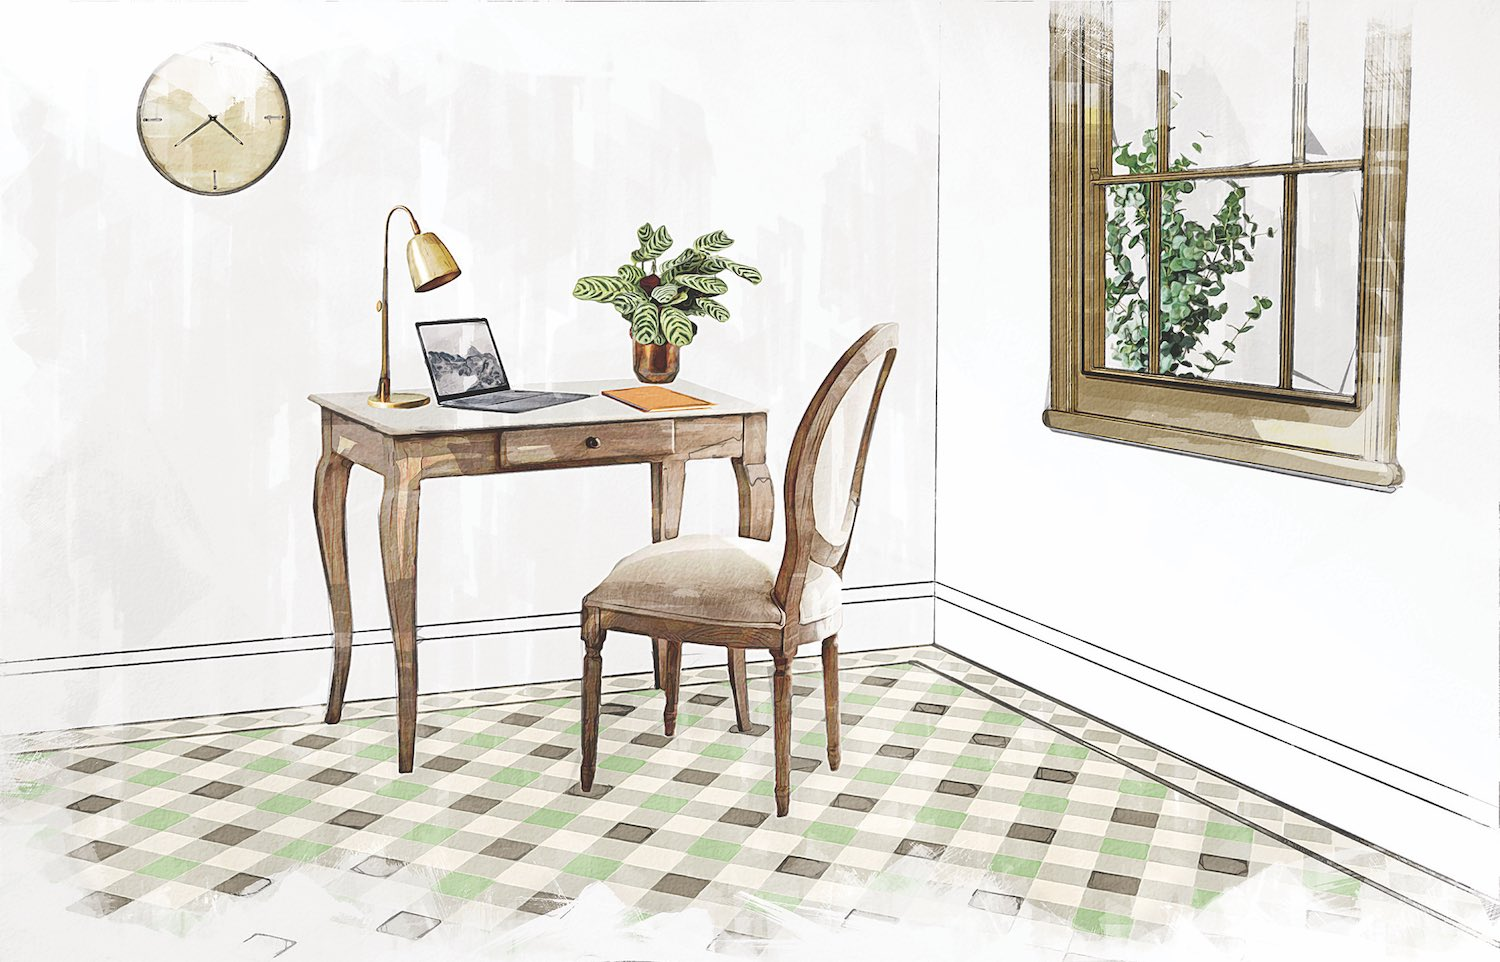 Spring Green Revival Grey and Chester Mews Victorian Floor Tiles from Original Style